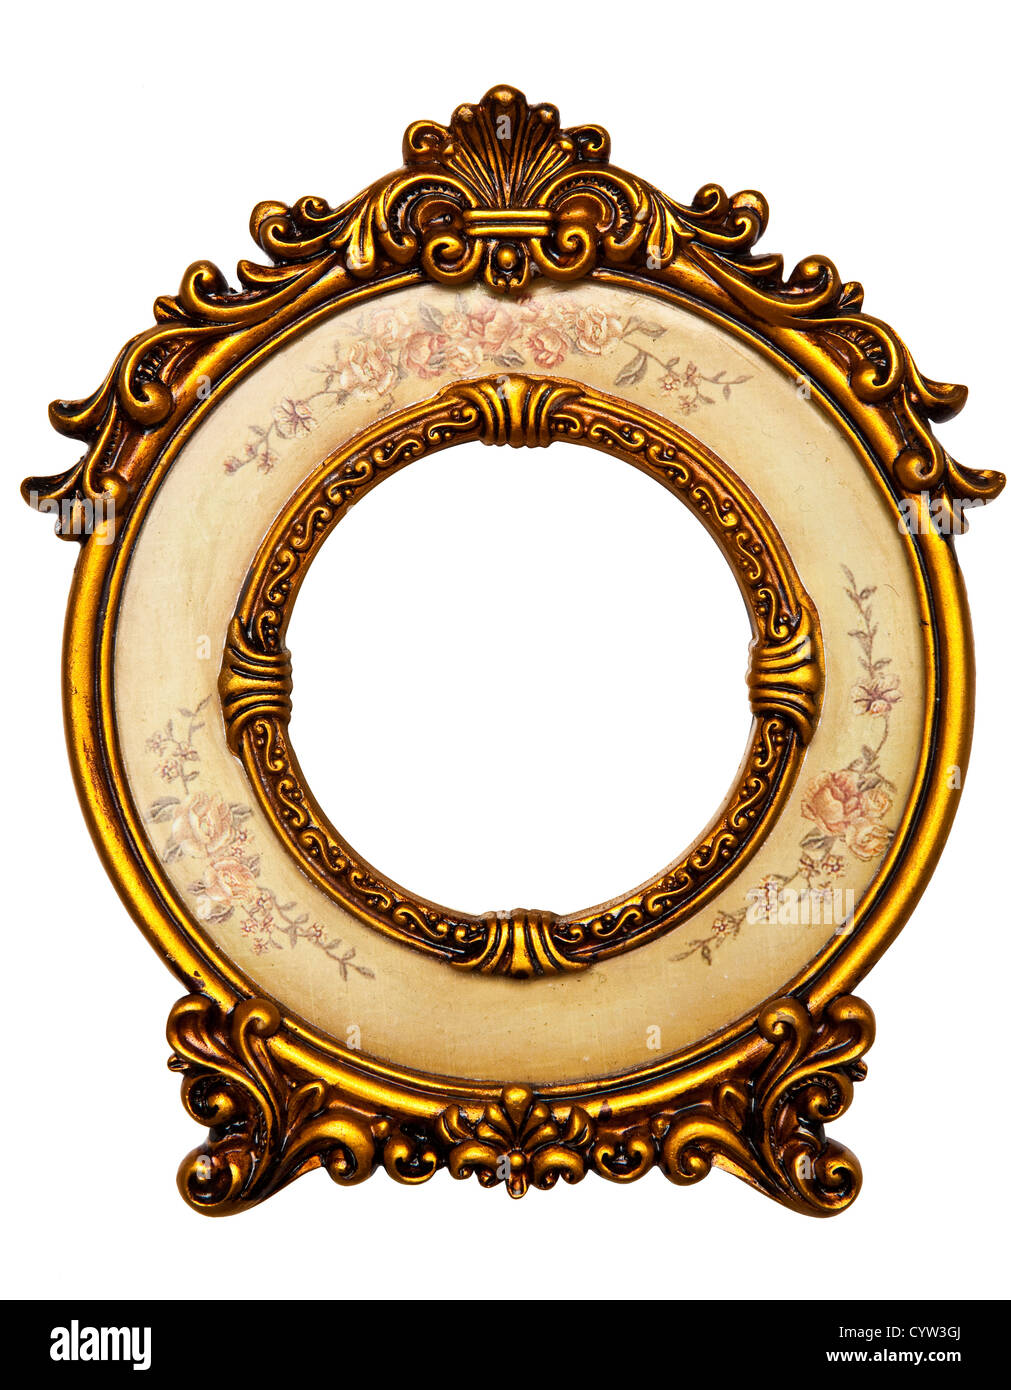 4a1356d7c62 Oval Frame Gold Stock Photos   Oval Frame Gold Stock Images - Alamy